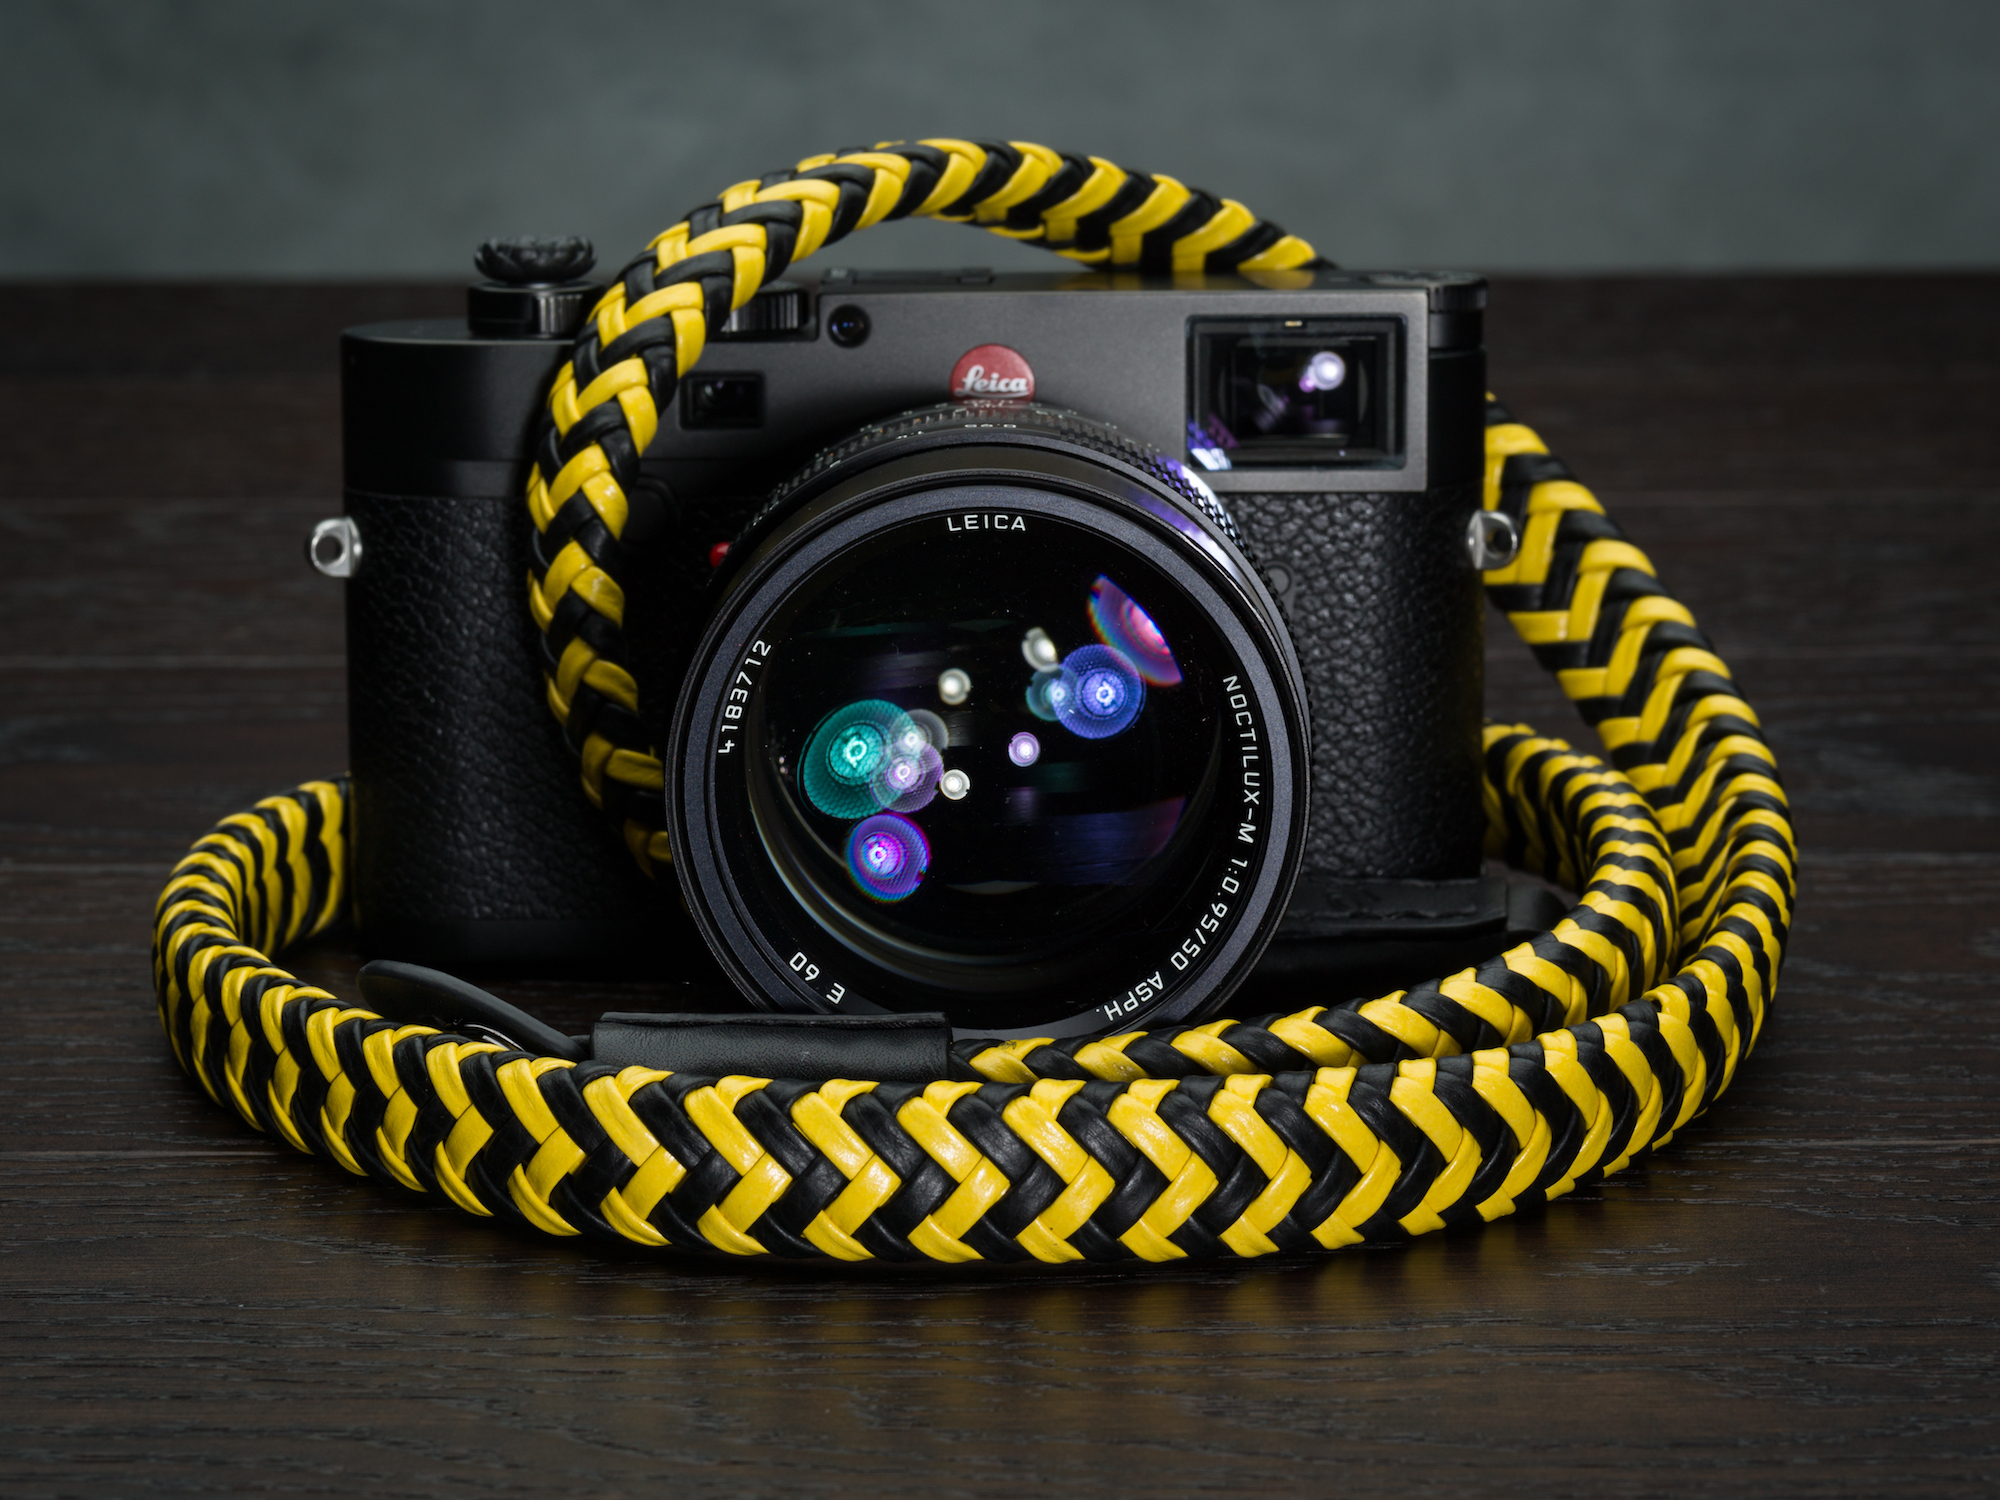 Vi Vante Matador Batman Braided Luxury Leather Camera Strap Leica M10 Noctilux 1.jpg